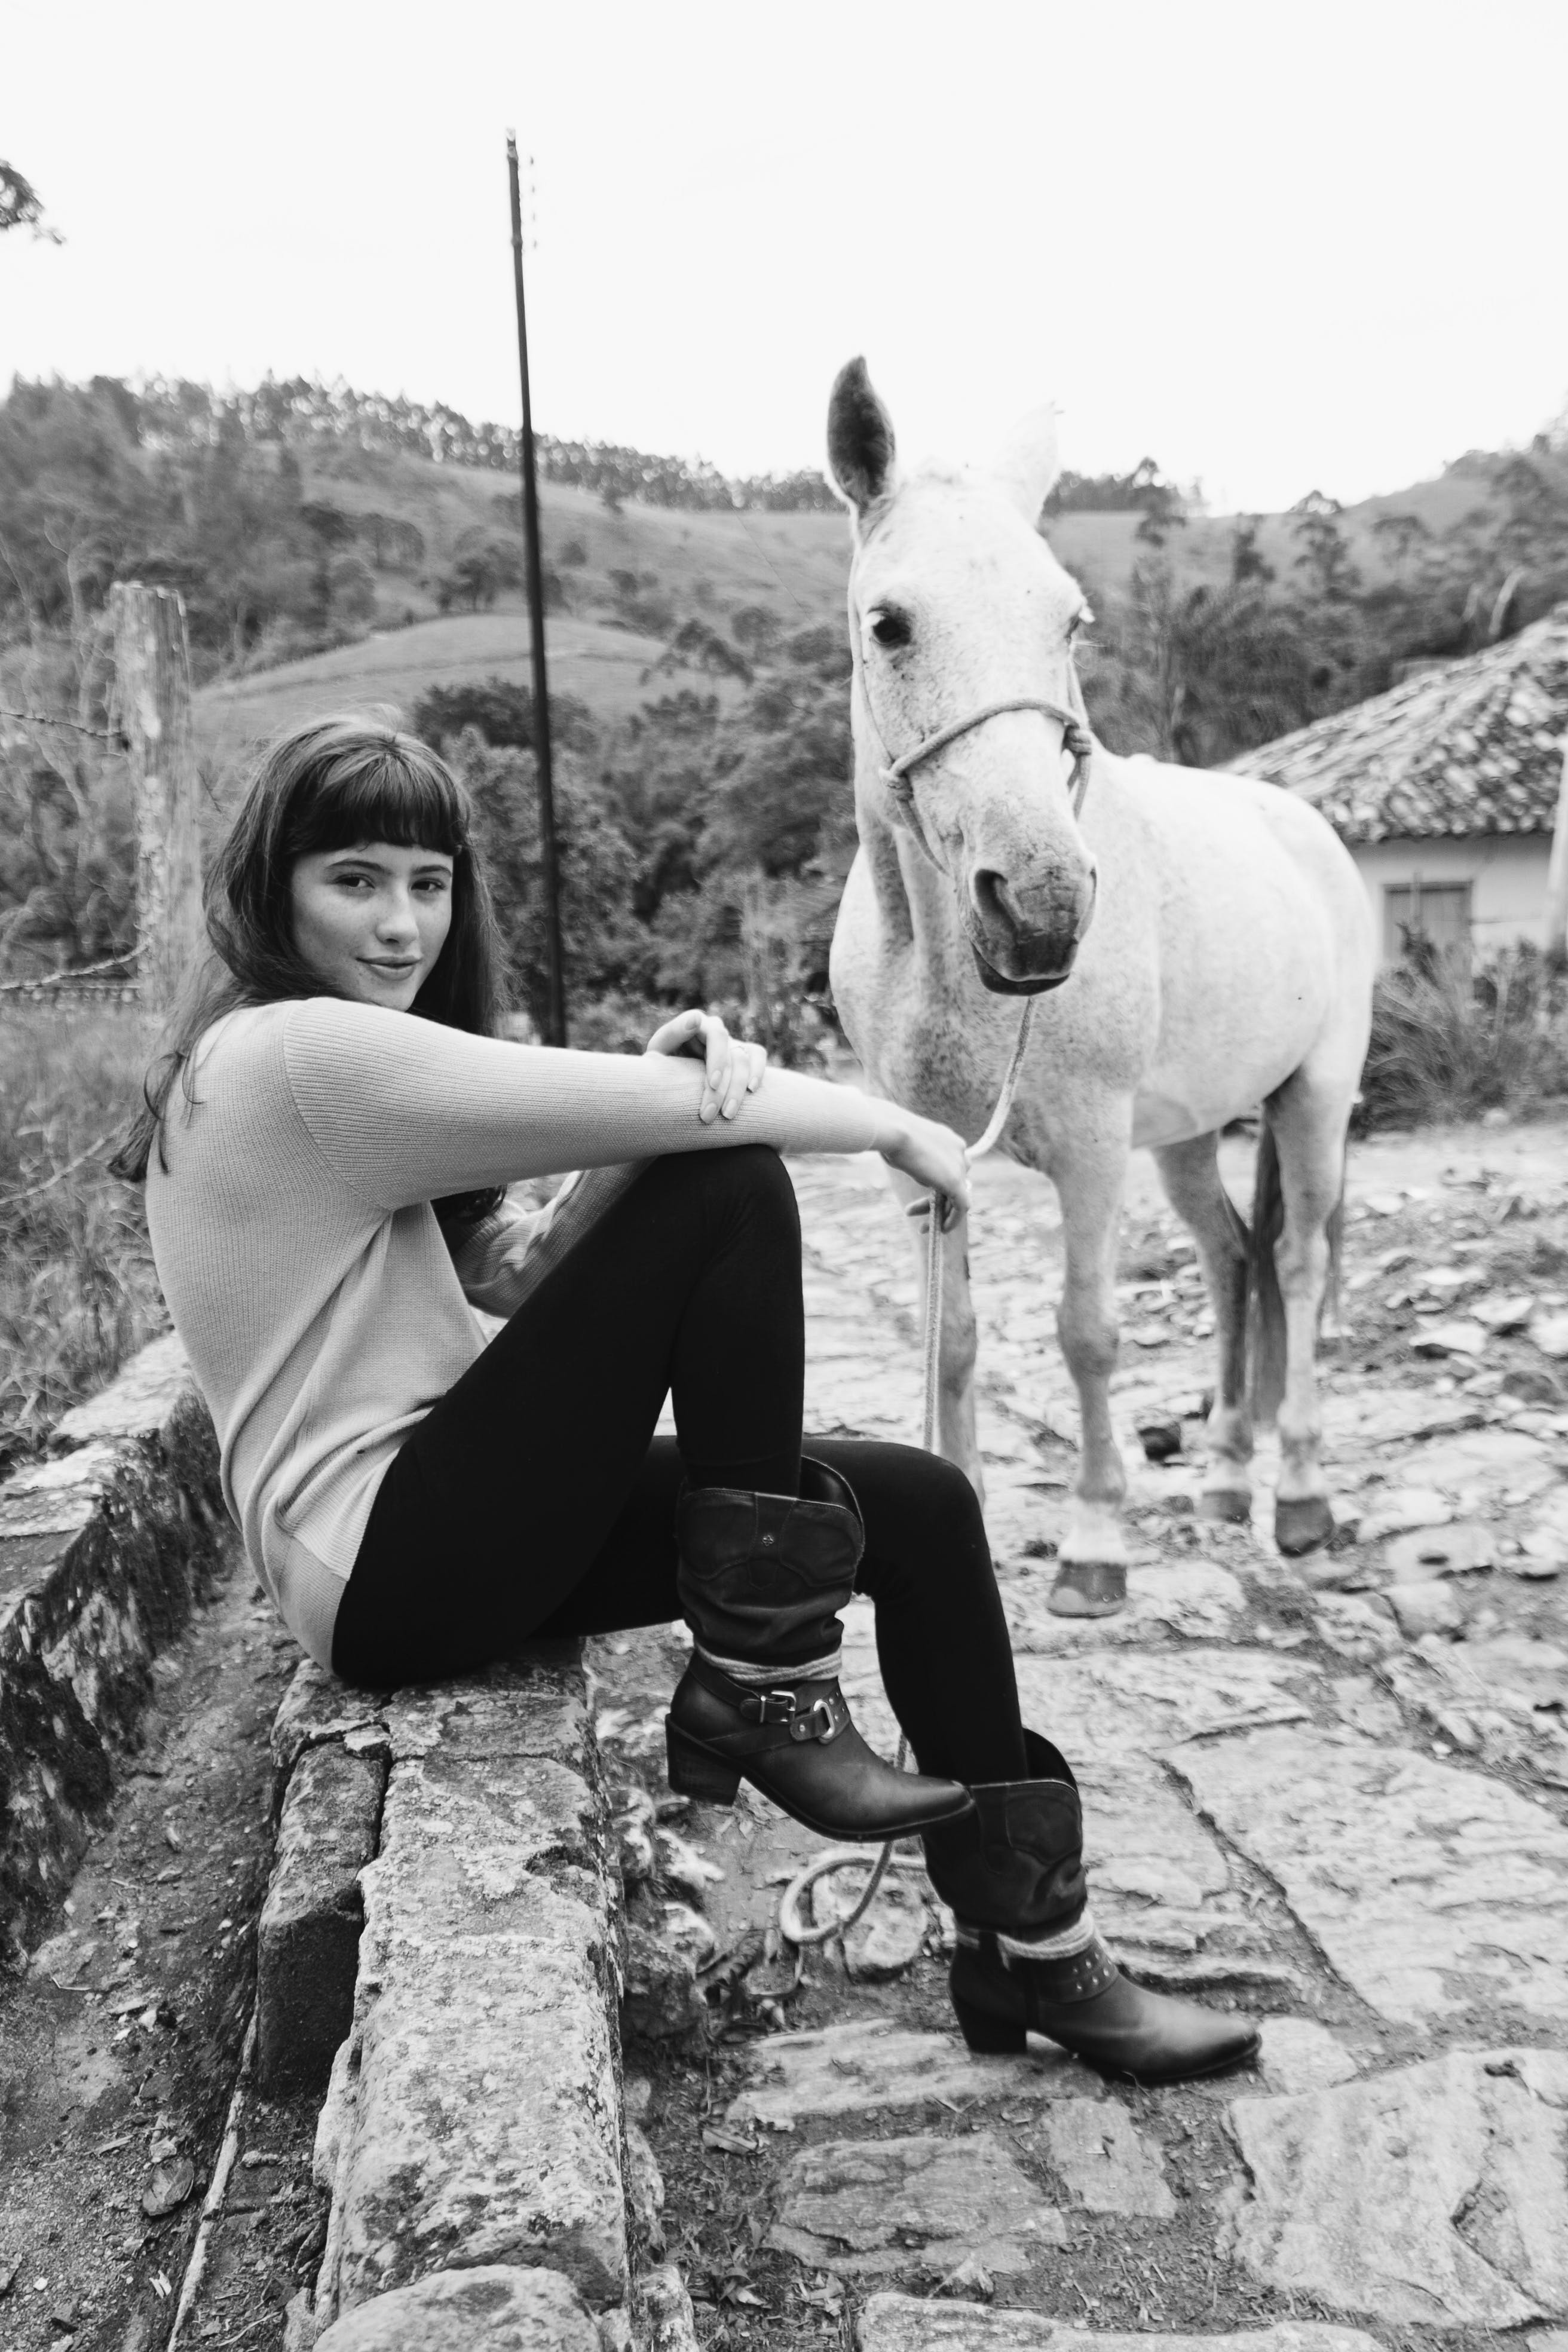 of animal, beauty, black and white, country